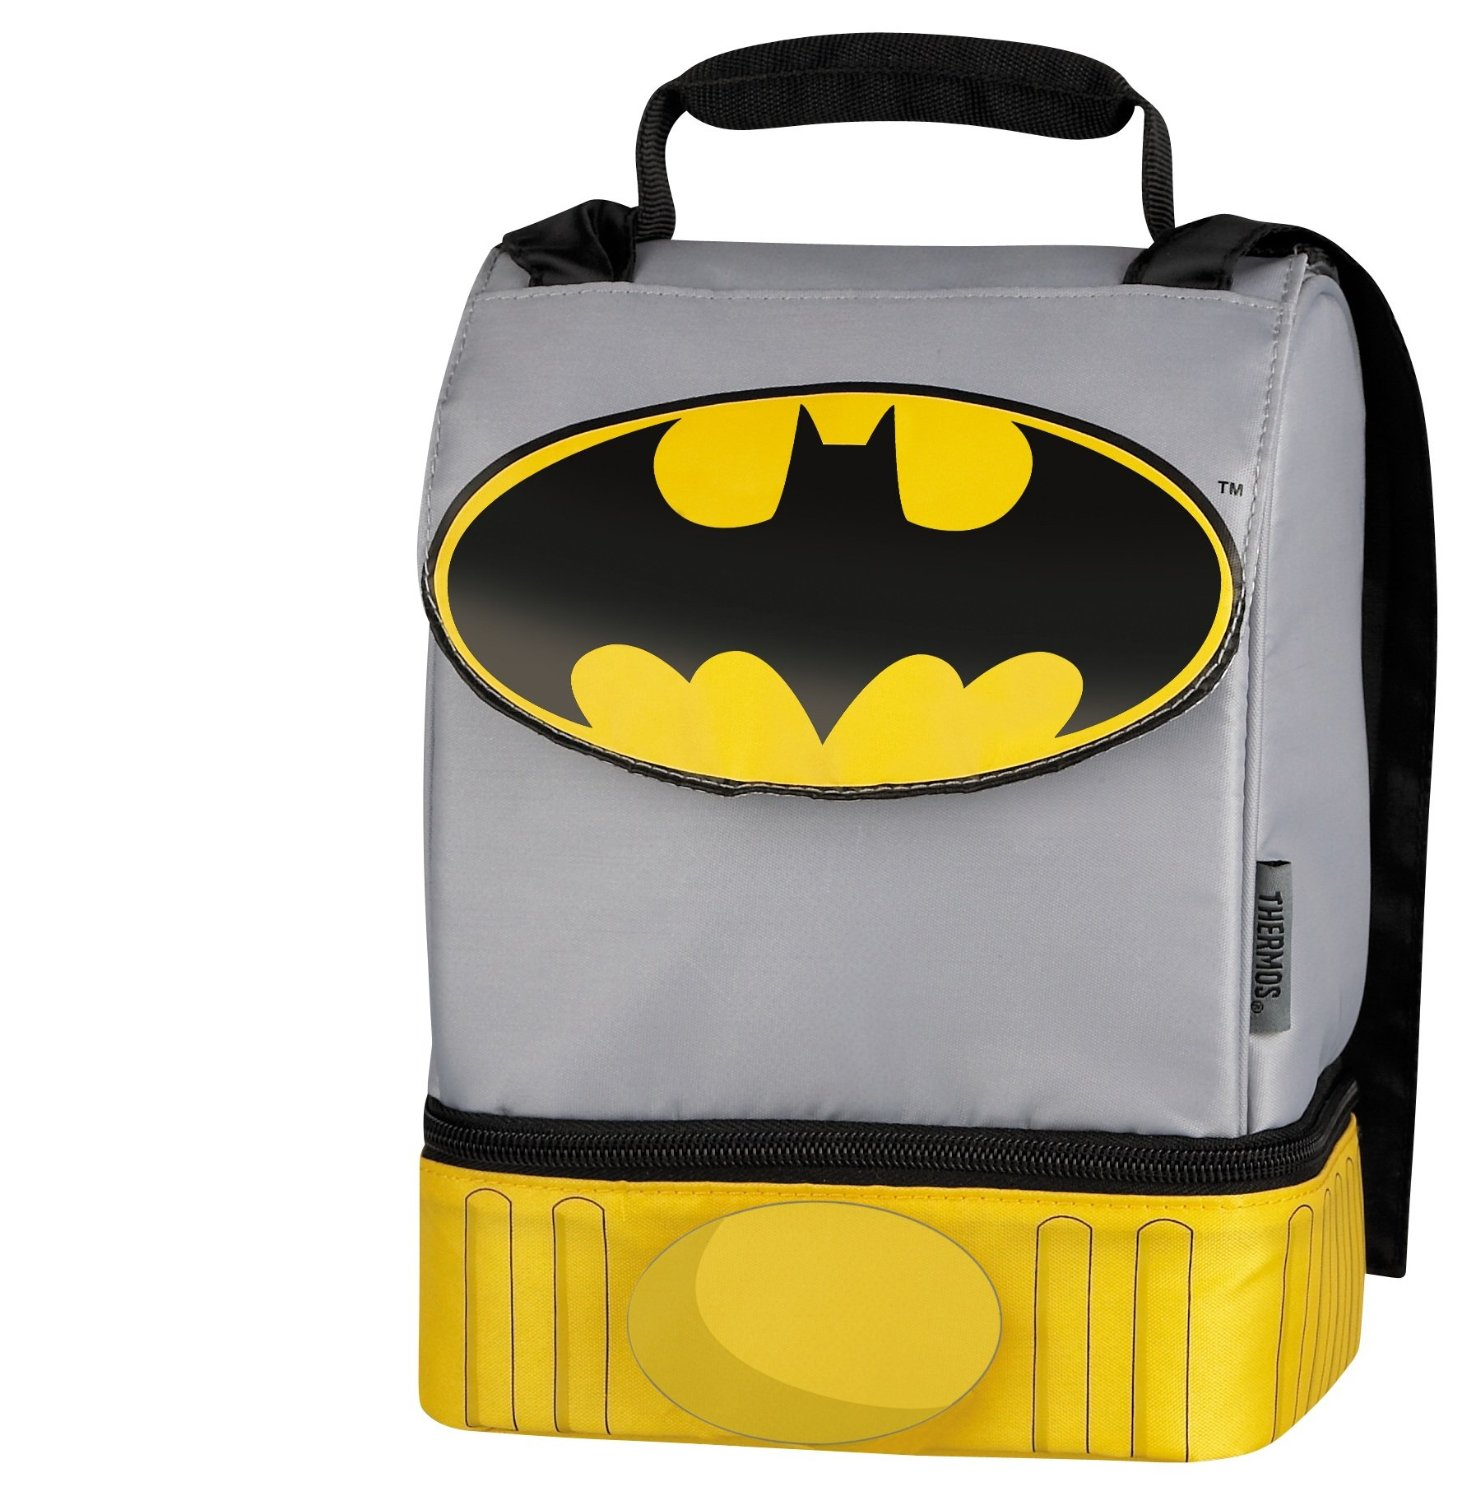 Less Classic Batman Lunch Kit